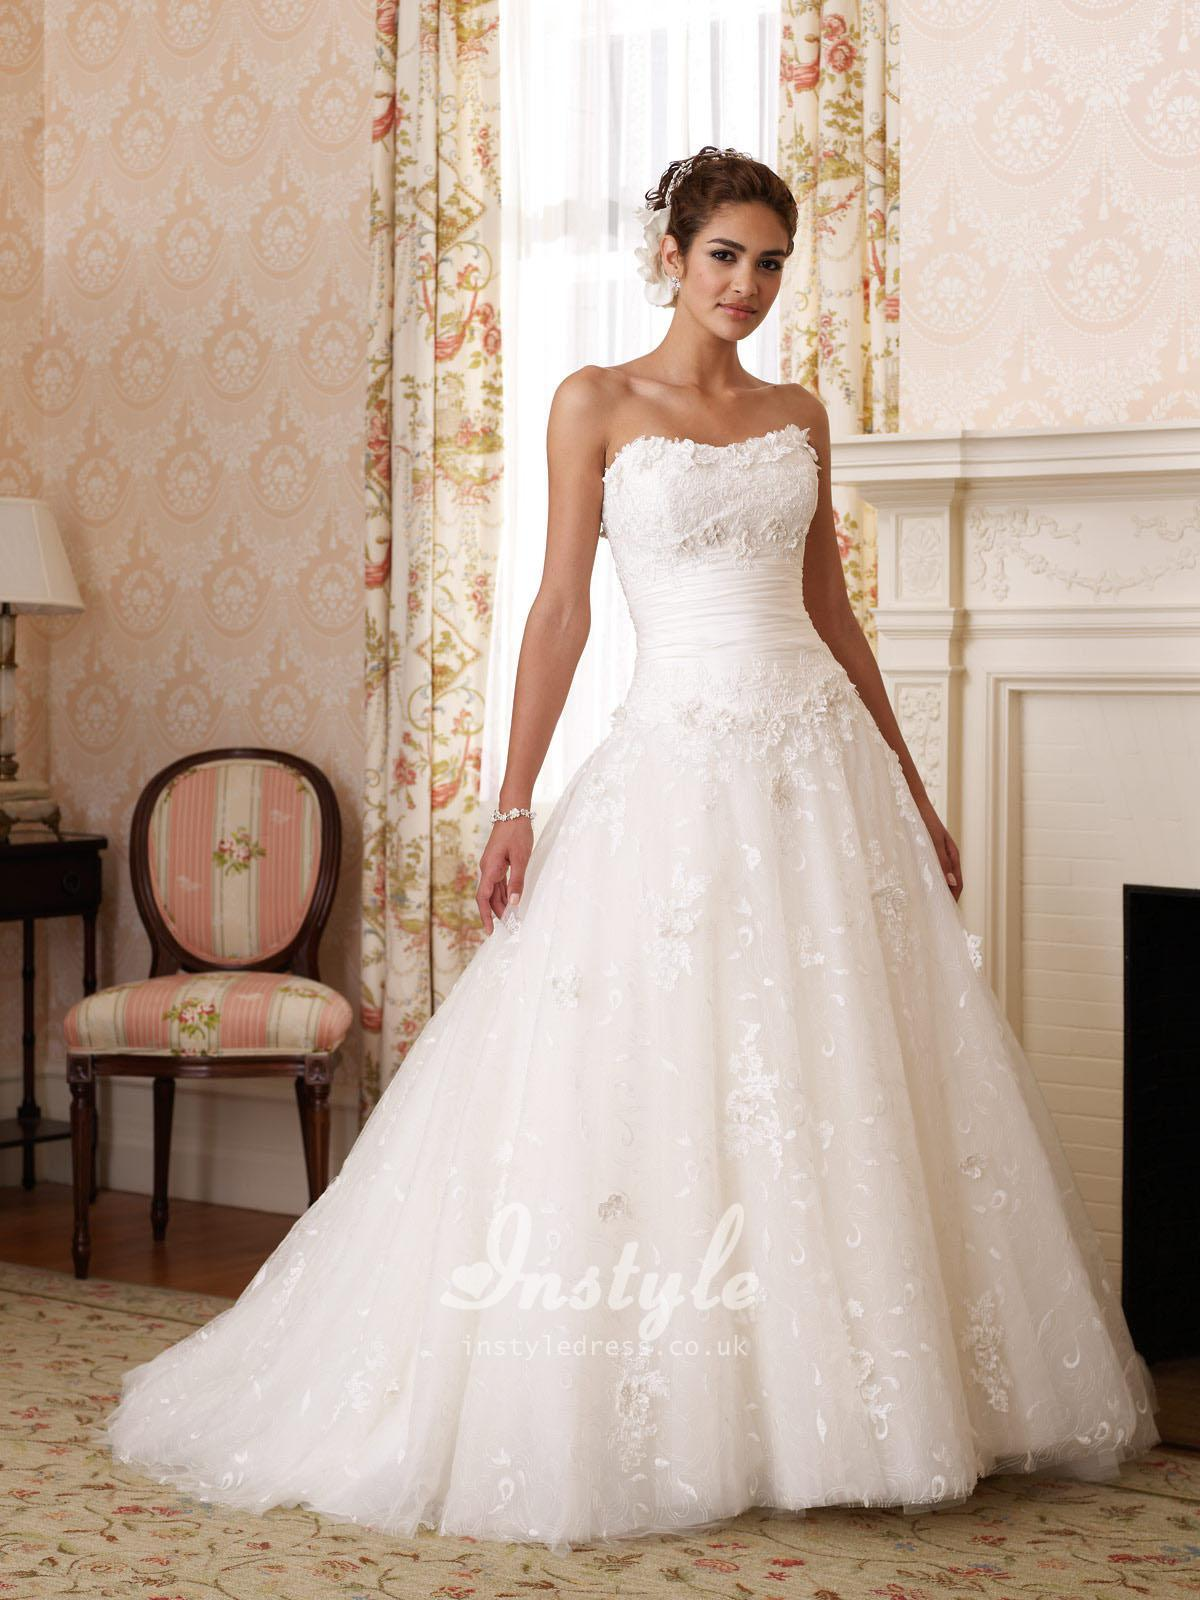 Lace Over Taffeta Strapless Ball Gown Wedding Dress UK